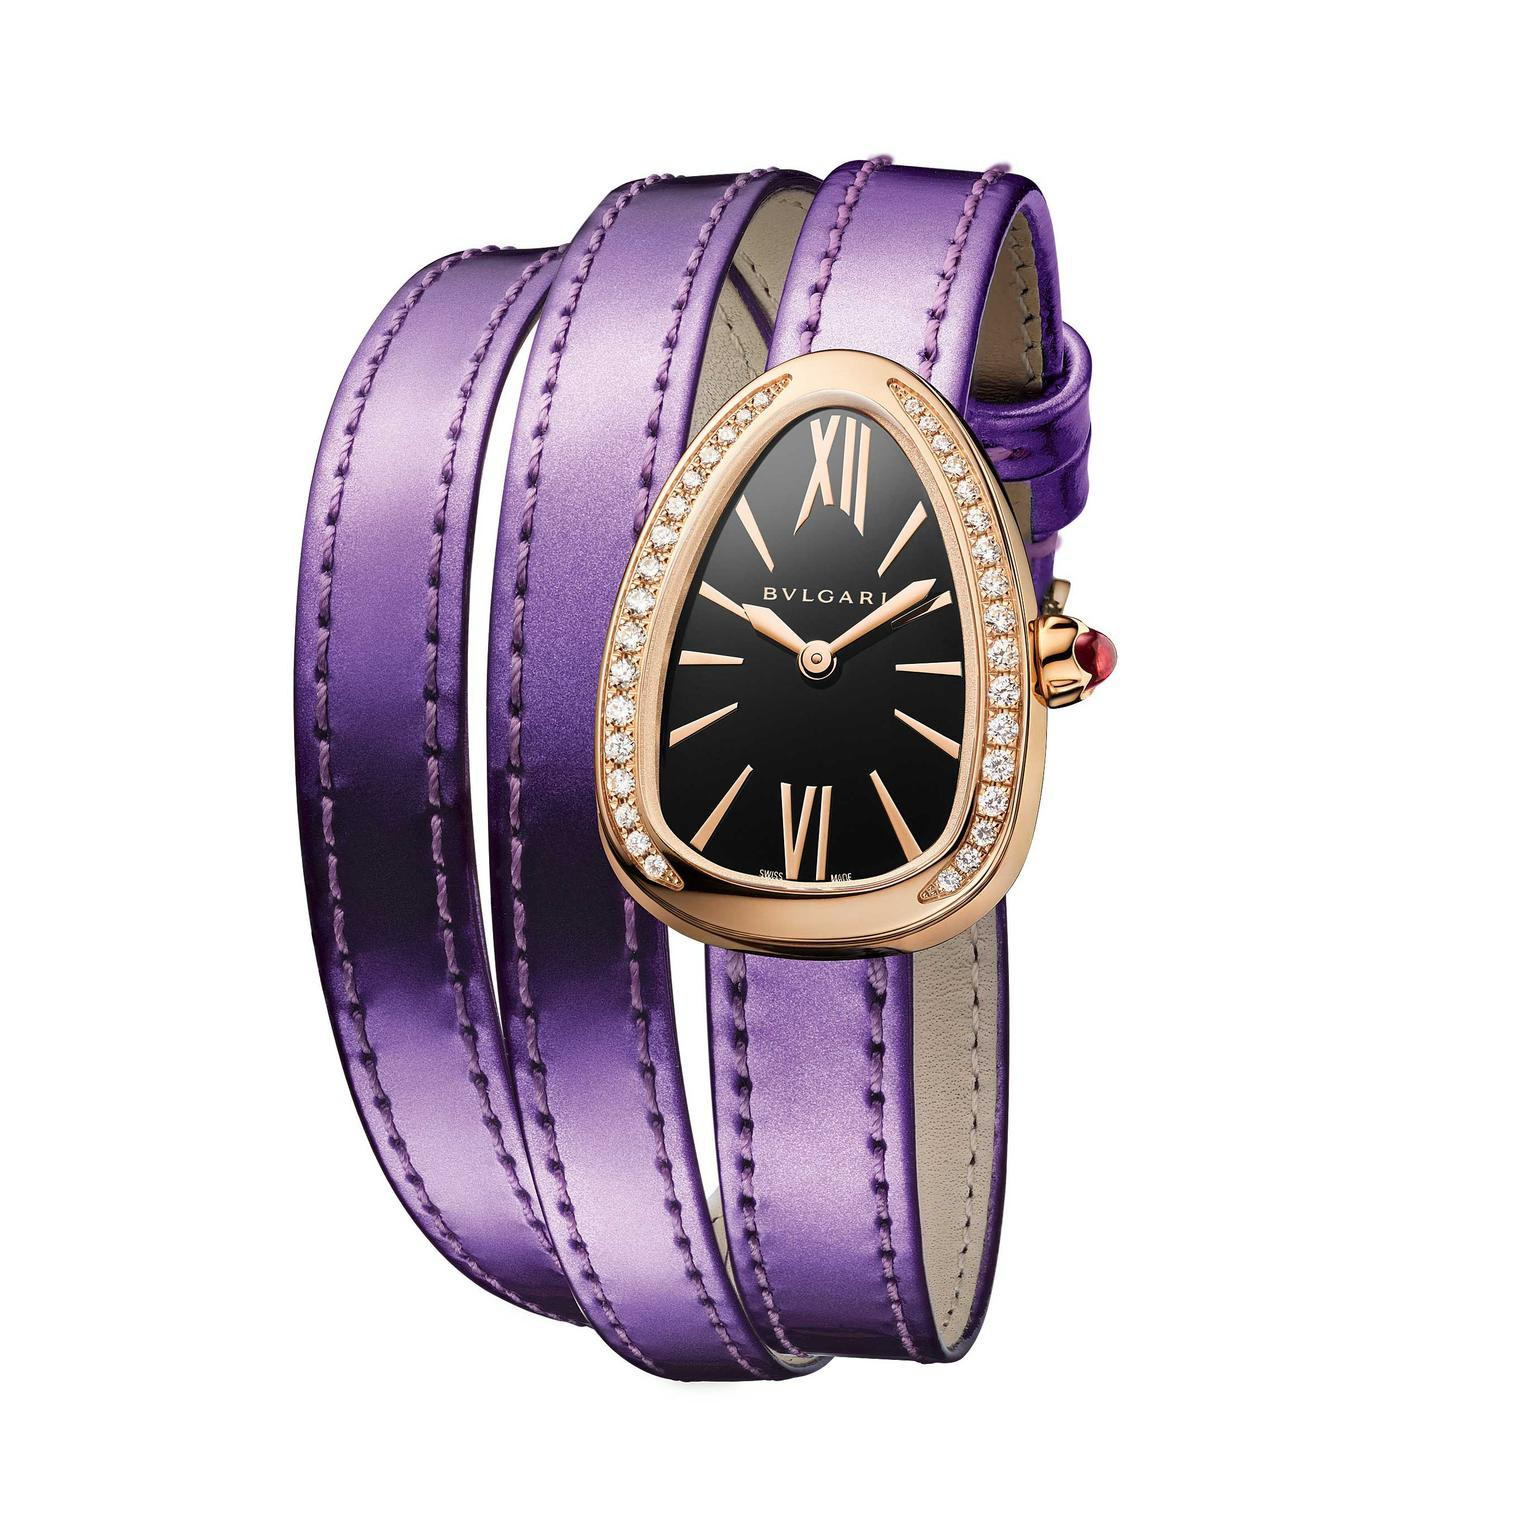 Bulgari-Serpenti-Twist-Your-Time-gold-ladies-watch-on-metallic-purple-strap